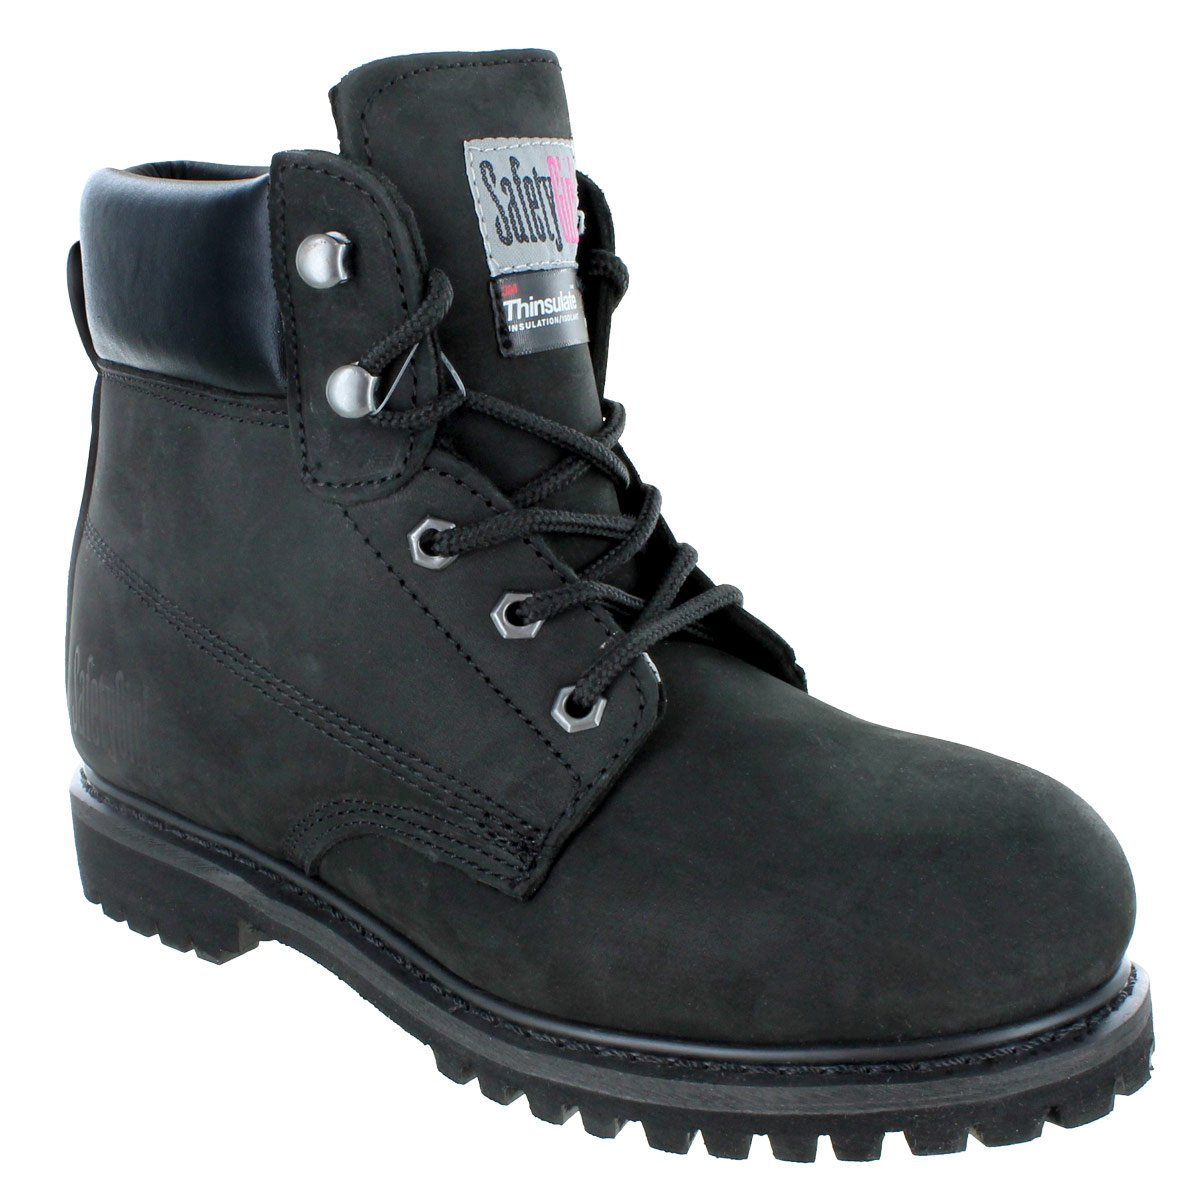 Safety Girl II Insulated Work Boot Black Soft Toe